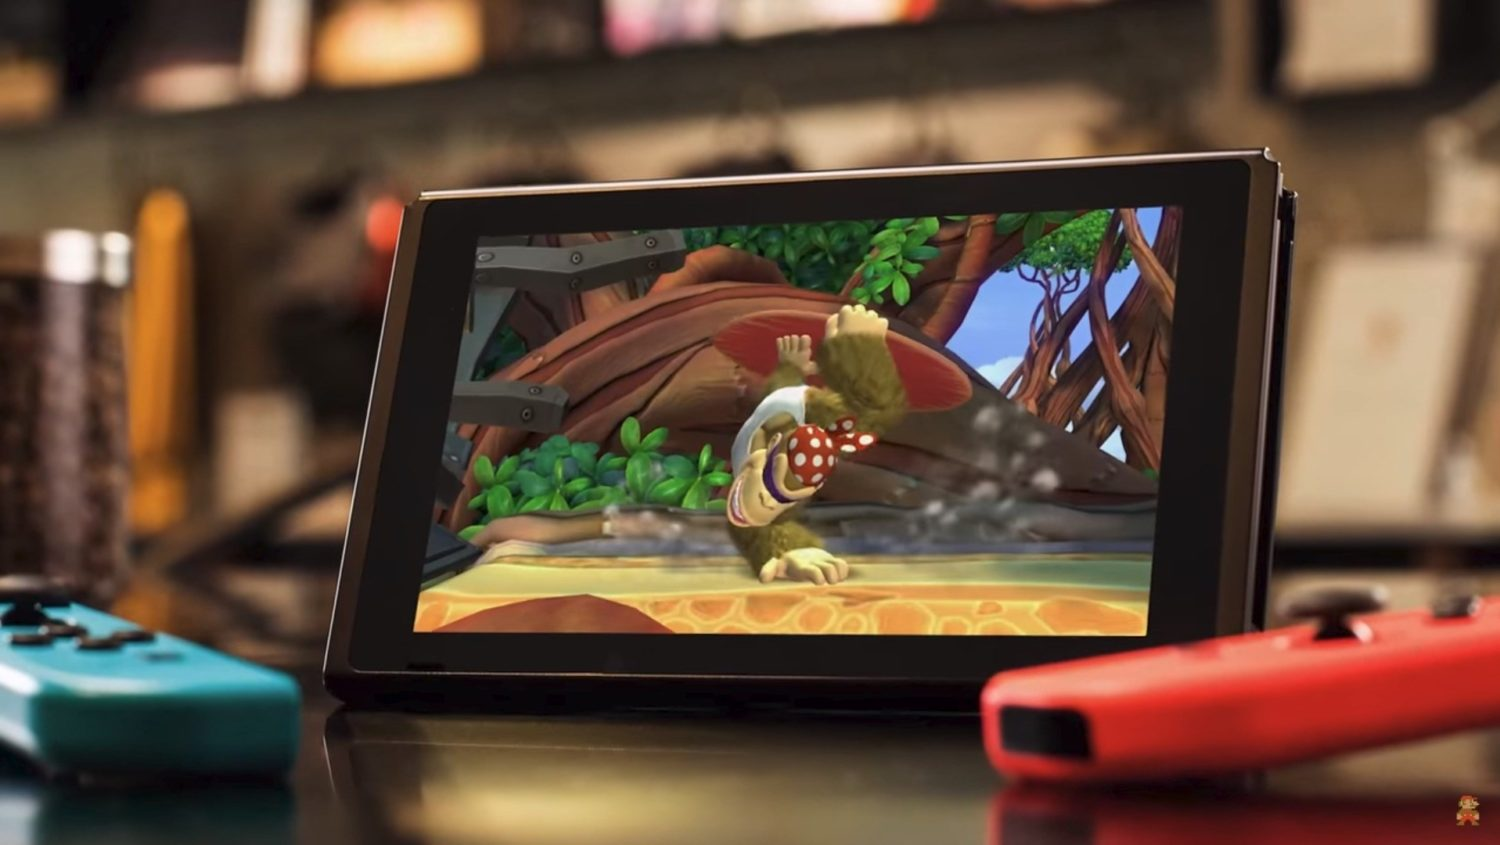 Nintendo-Direct-Mini-Nintendo no hará Direct en junio-Nintendo Direct